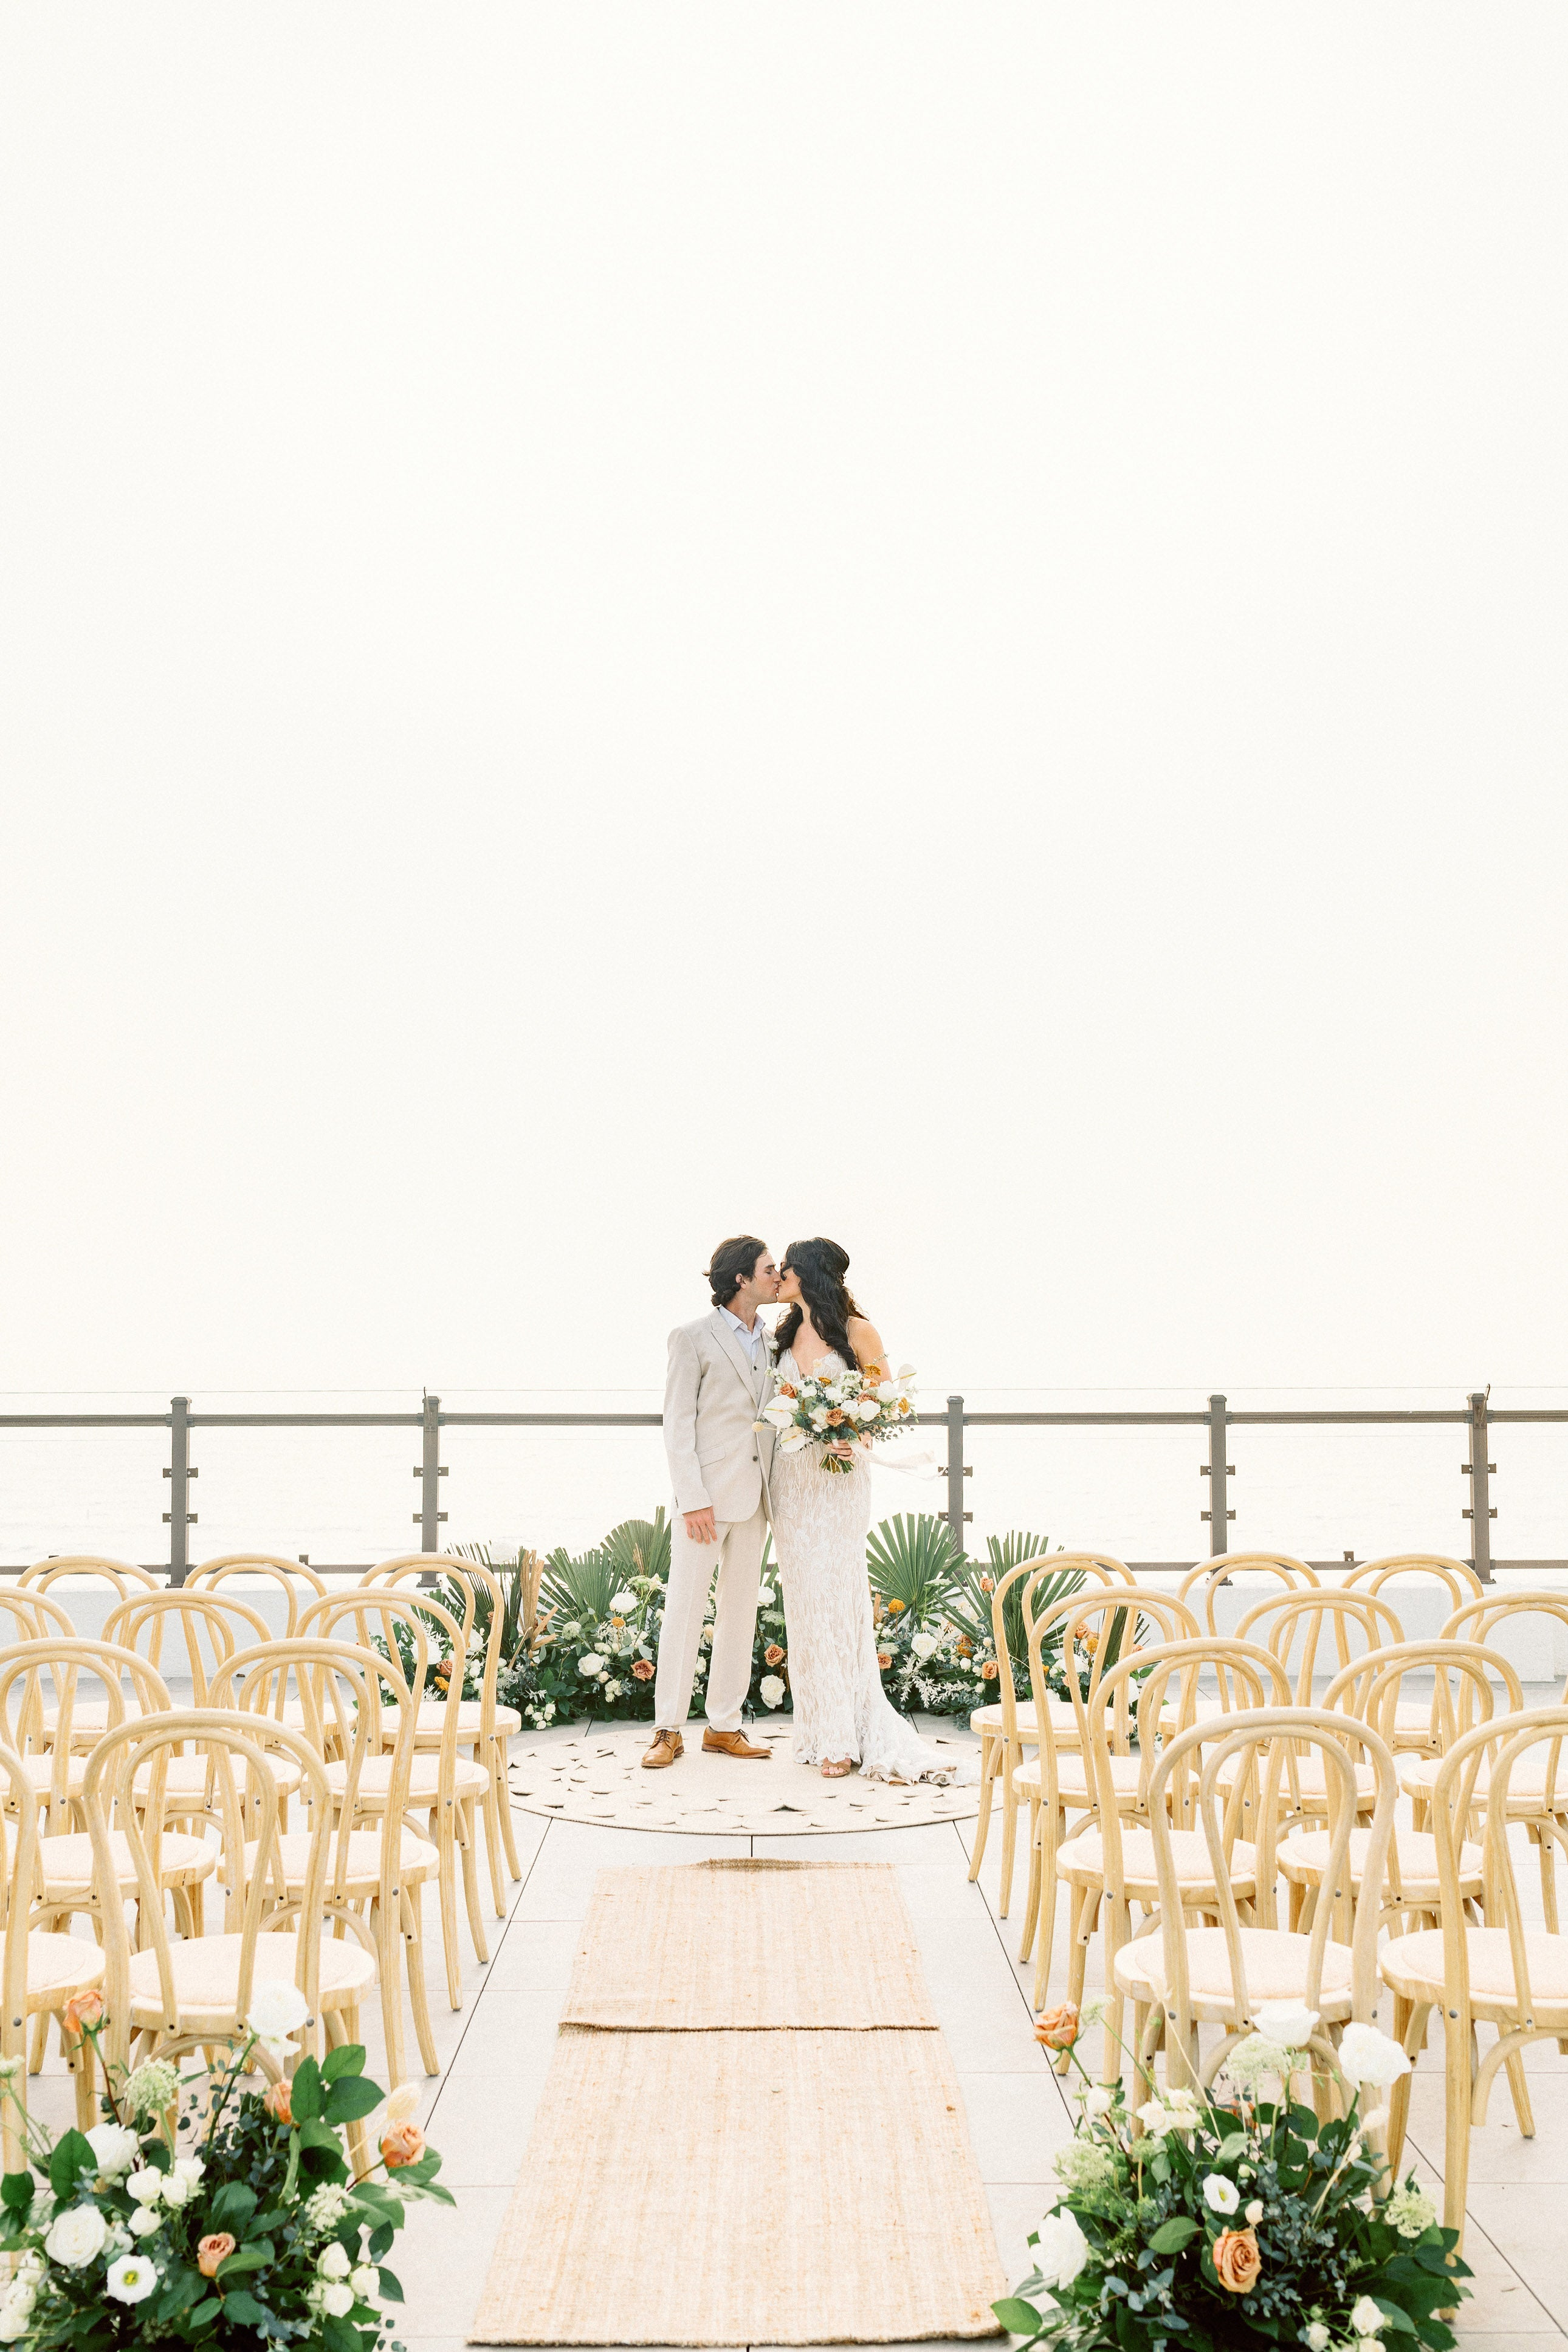 Roofto Roof Top Beach Wedding Florida Tampa St.Pete Barefoot Beach Hotel